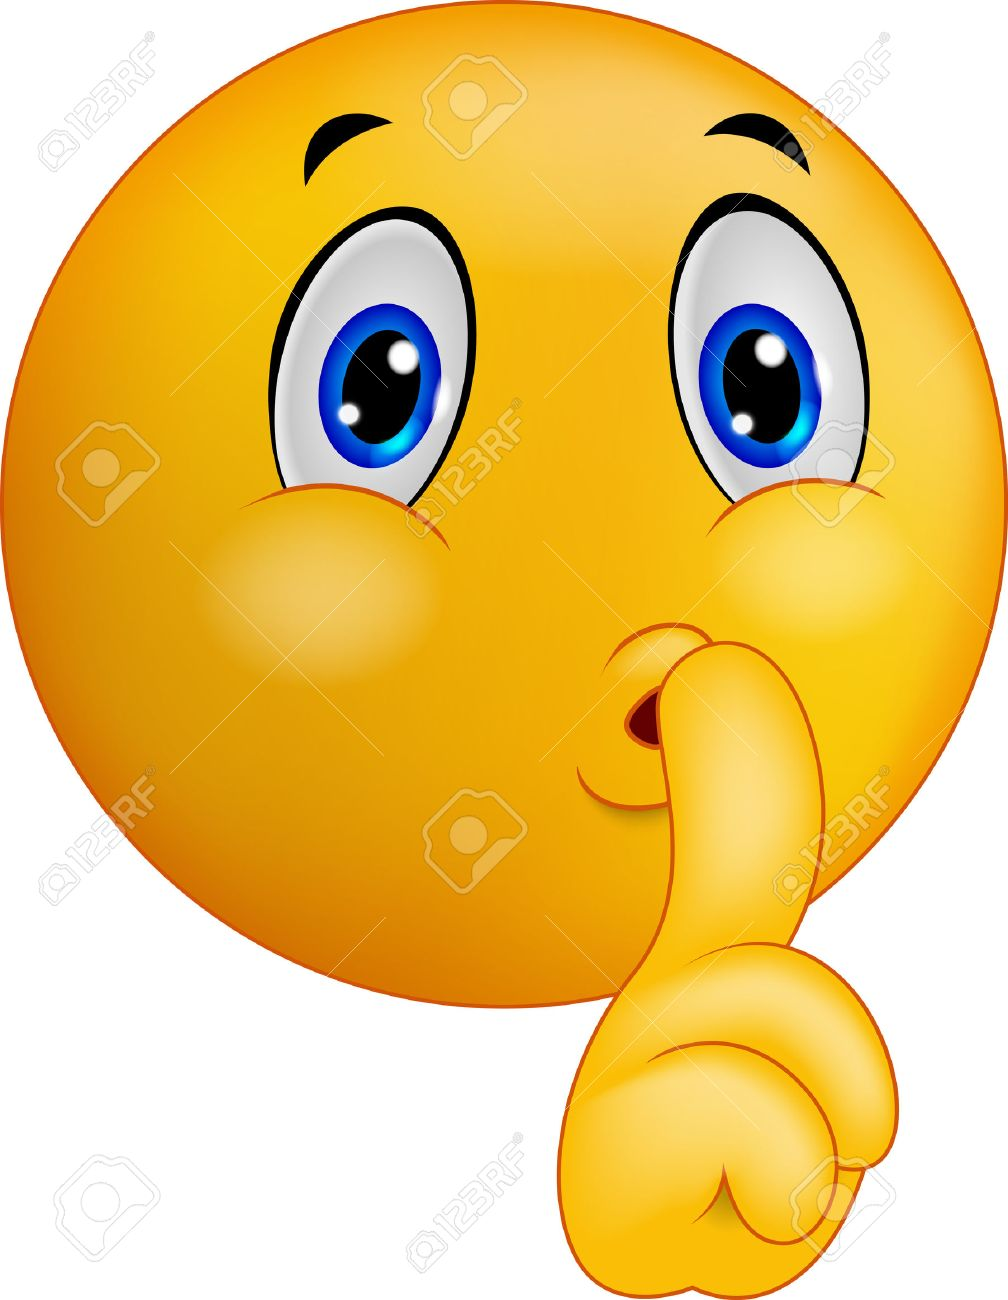 cartoon emoticon smiley making silence sign royalty free cliparts, vectors,  and stock illustration. image 34097535.  123rf